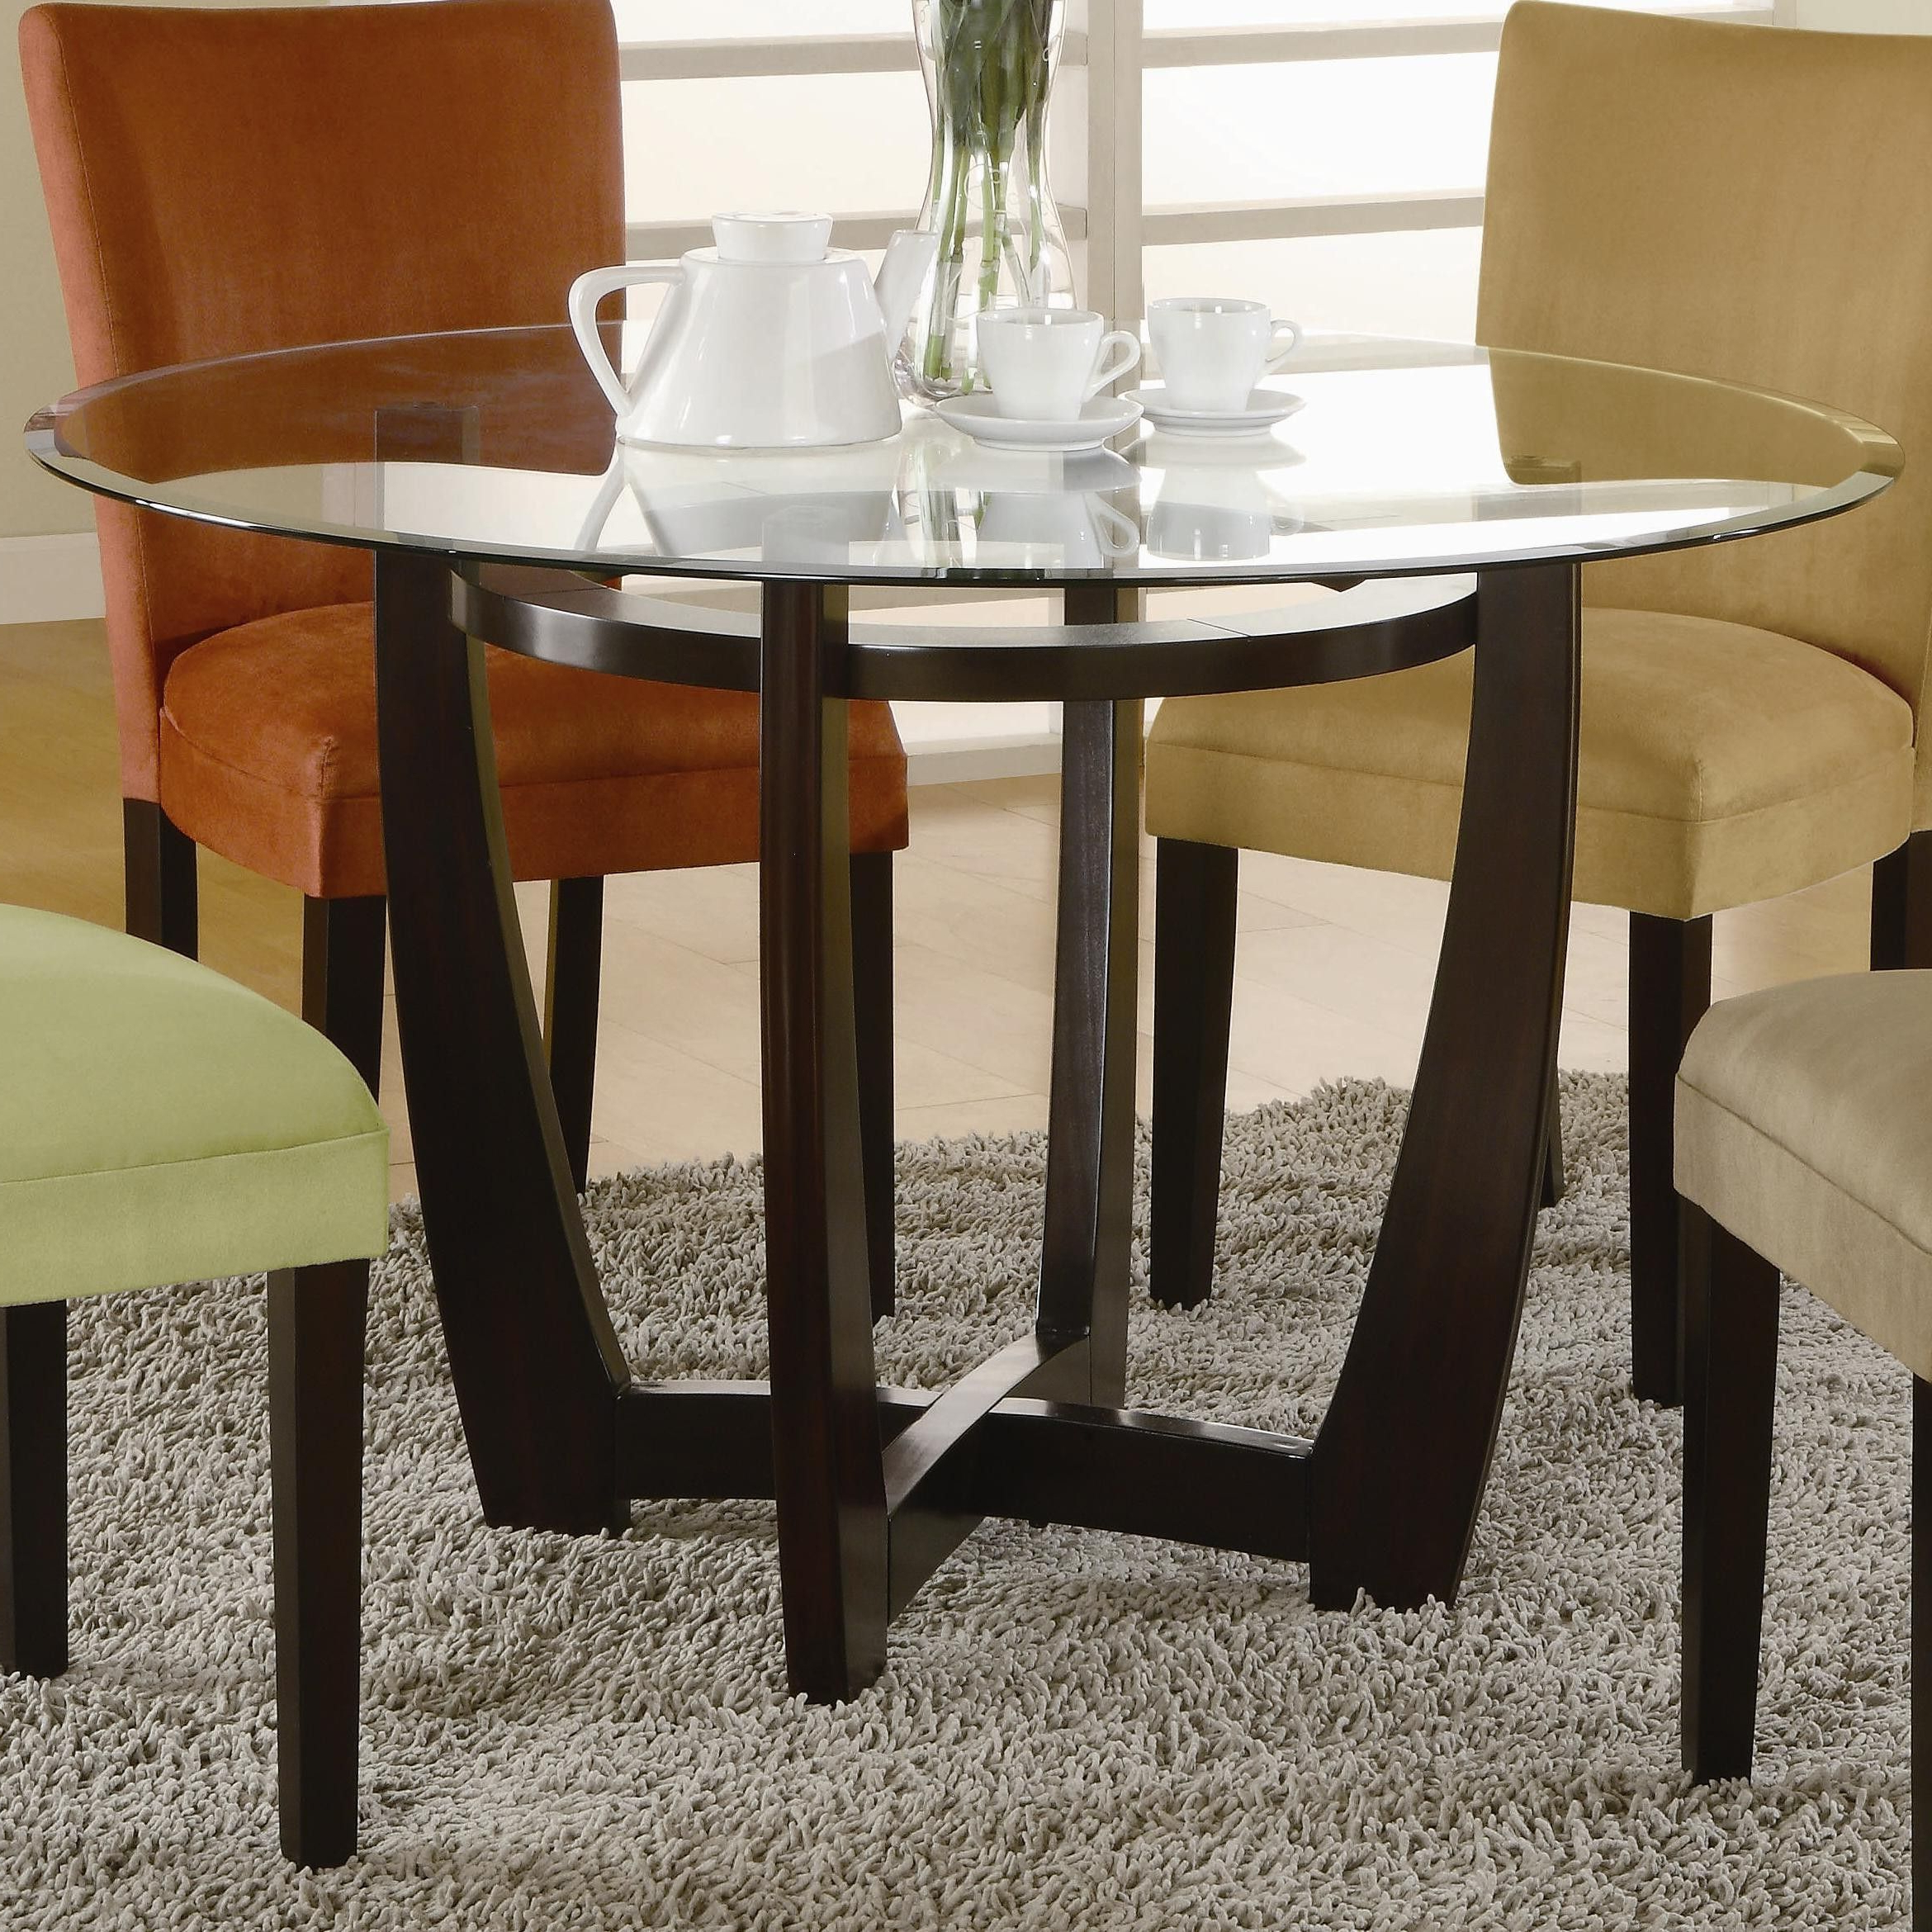 Popular Round Glass Top Dining Table With Wooden Base Home Within Round Glass Top Dining Tables (View 11 of 30)